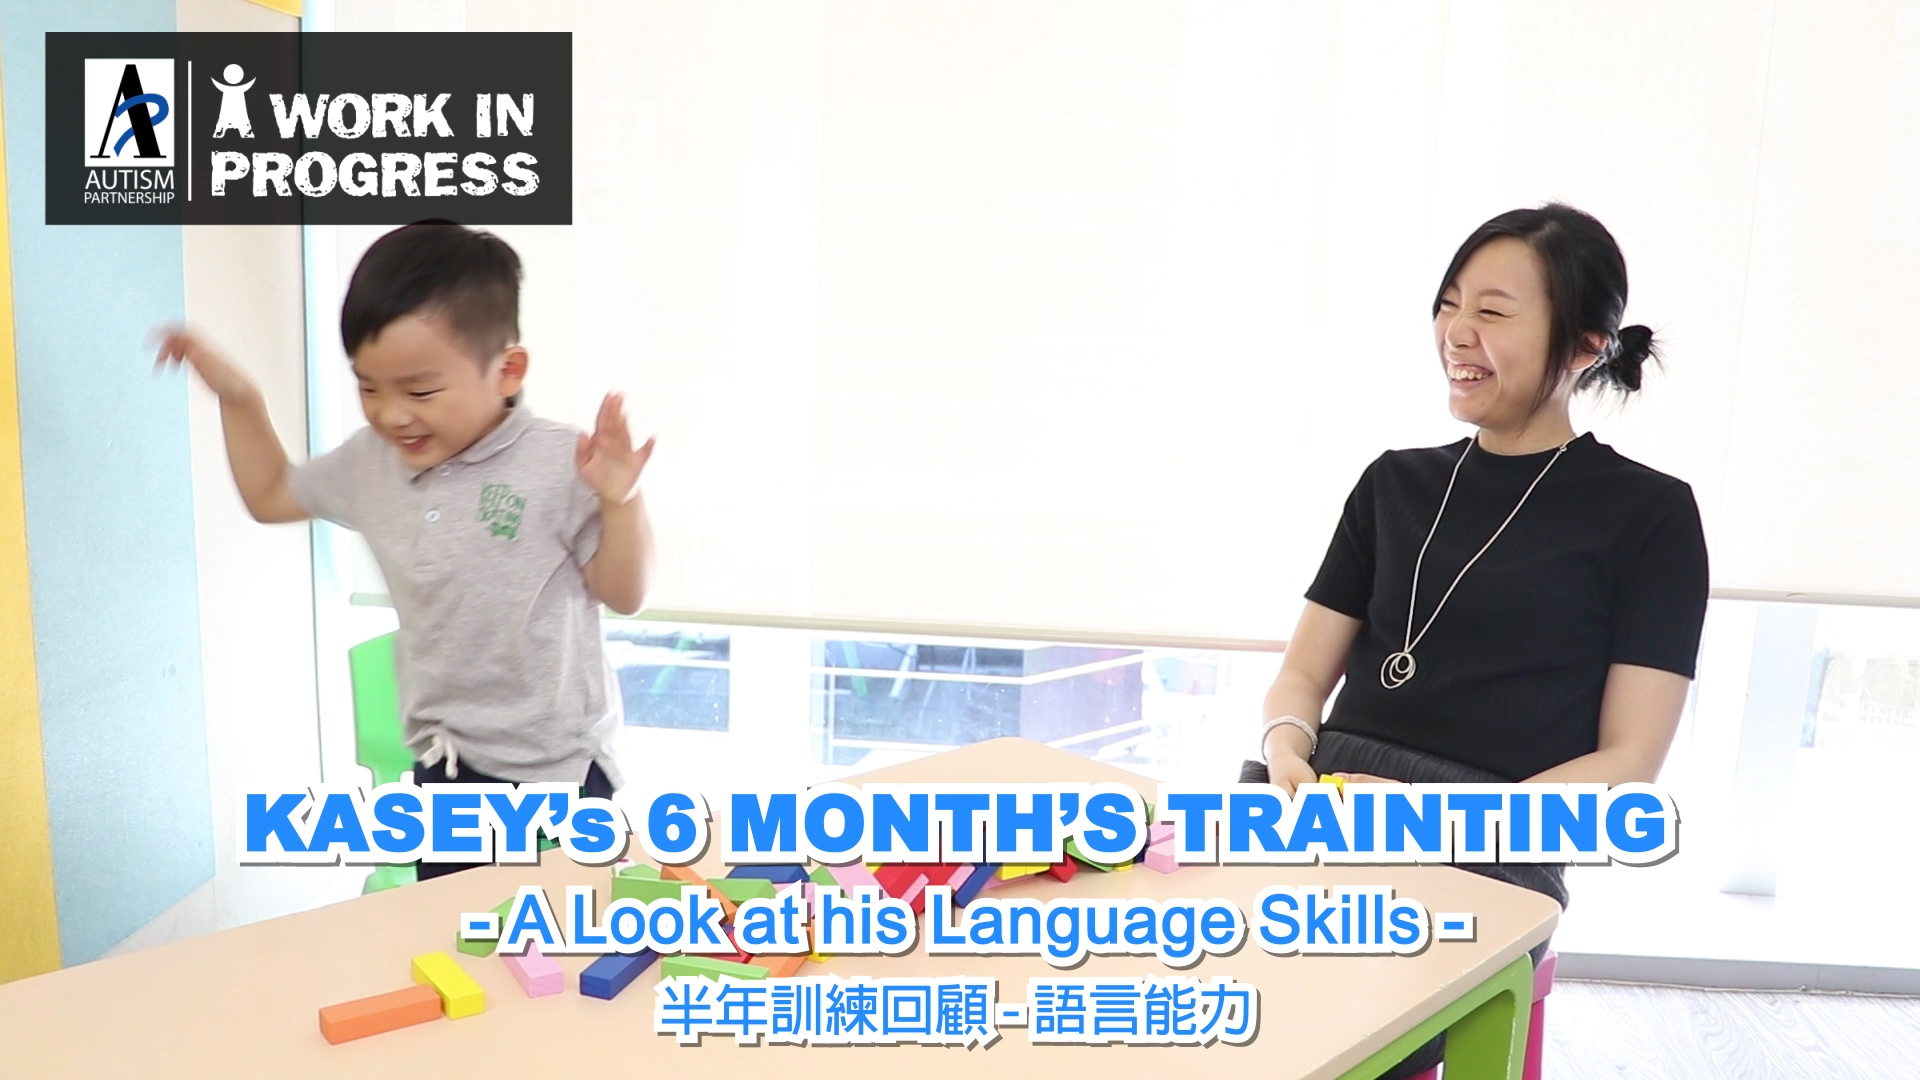 kaseys-6-months-training-a-look-at-his-language-skills